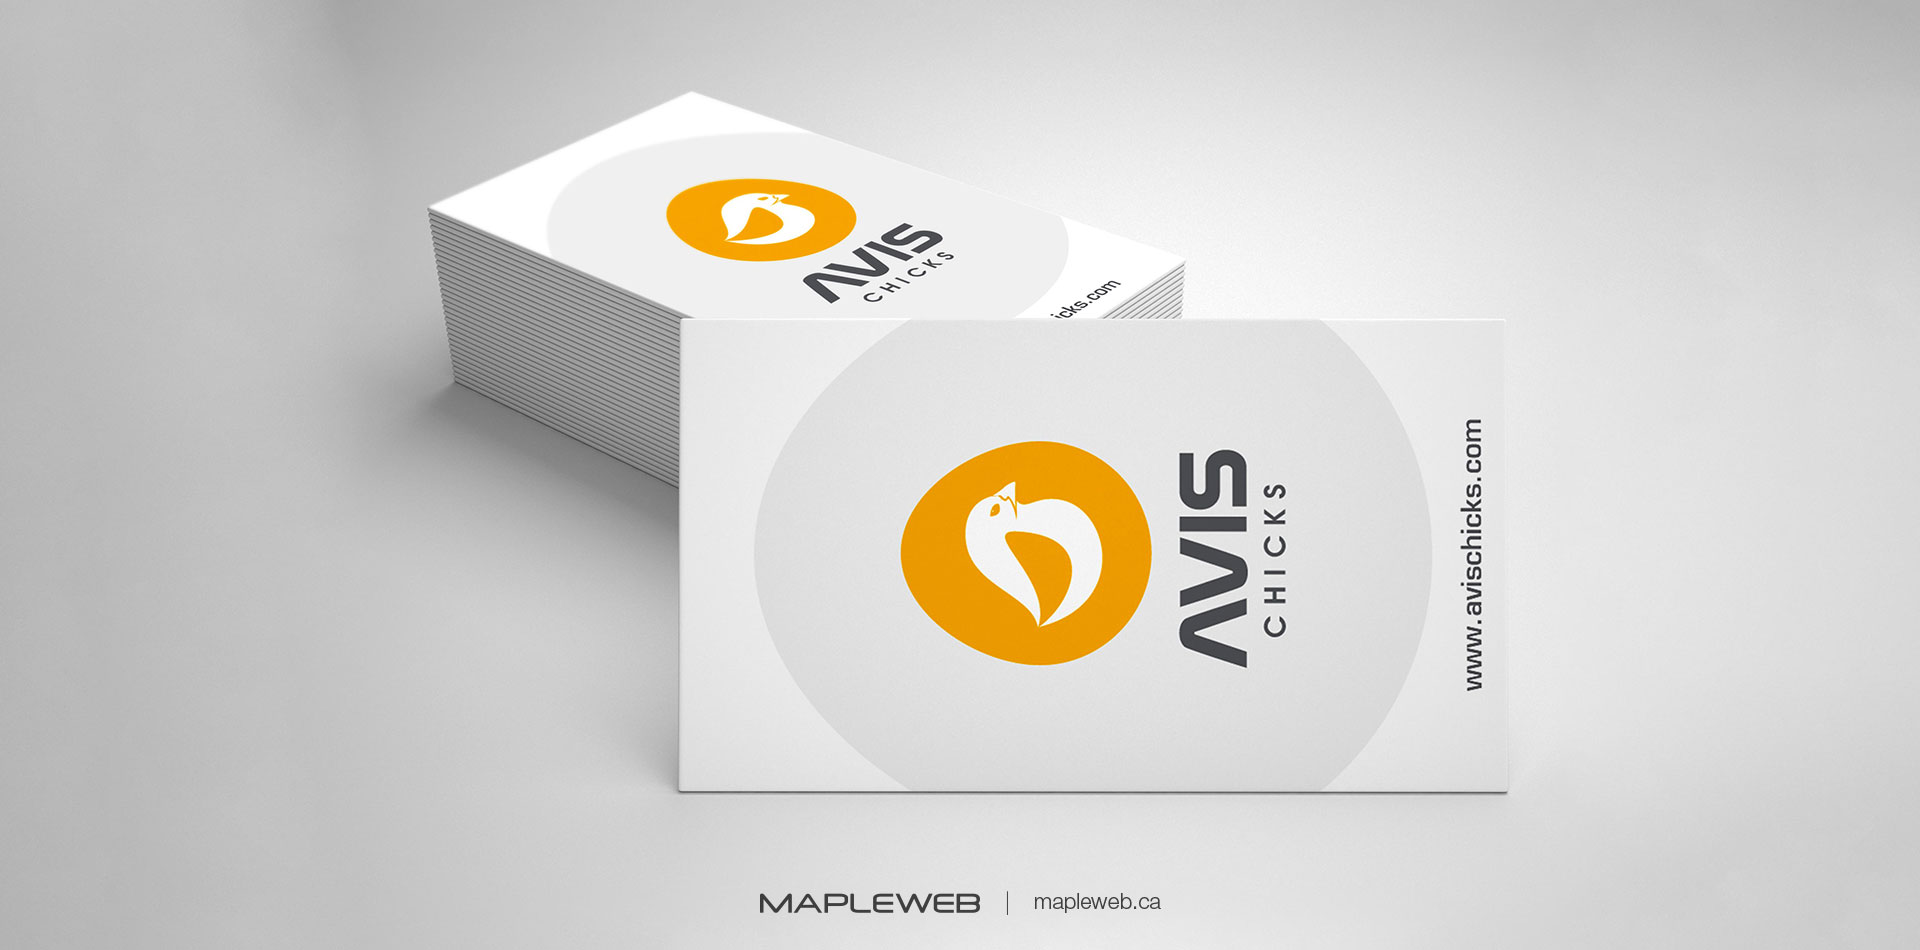 avis-chicks-Vancouver-brand-design-Vancouver-graphic-design-by-mapleweb-canada-business-card-lightgrey-background-mock